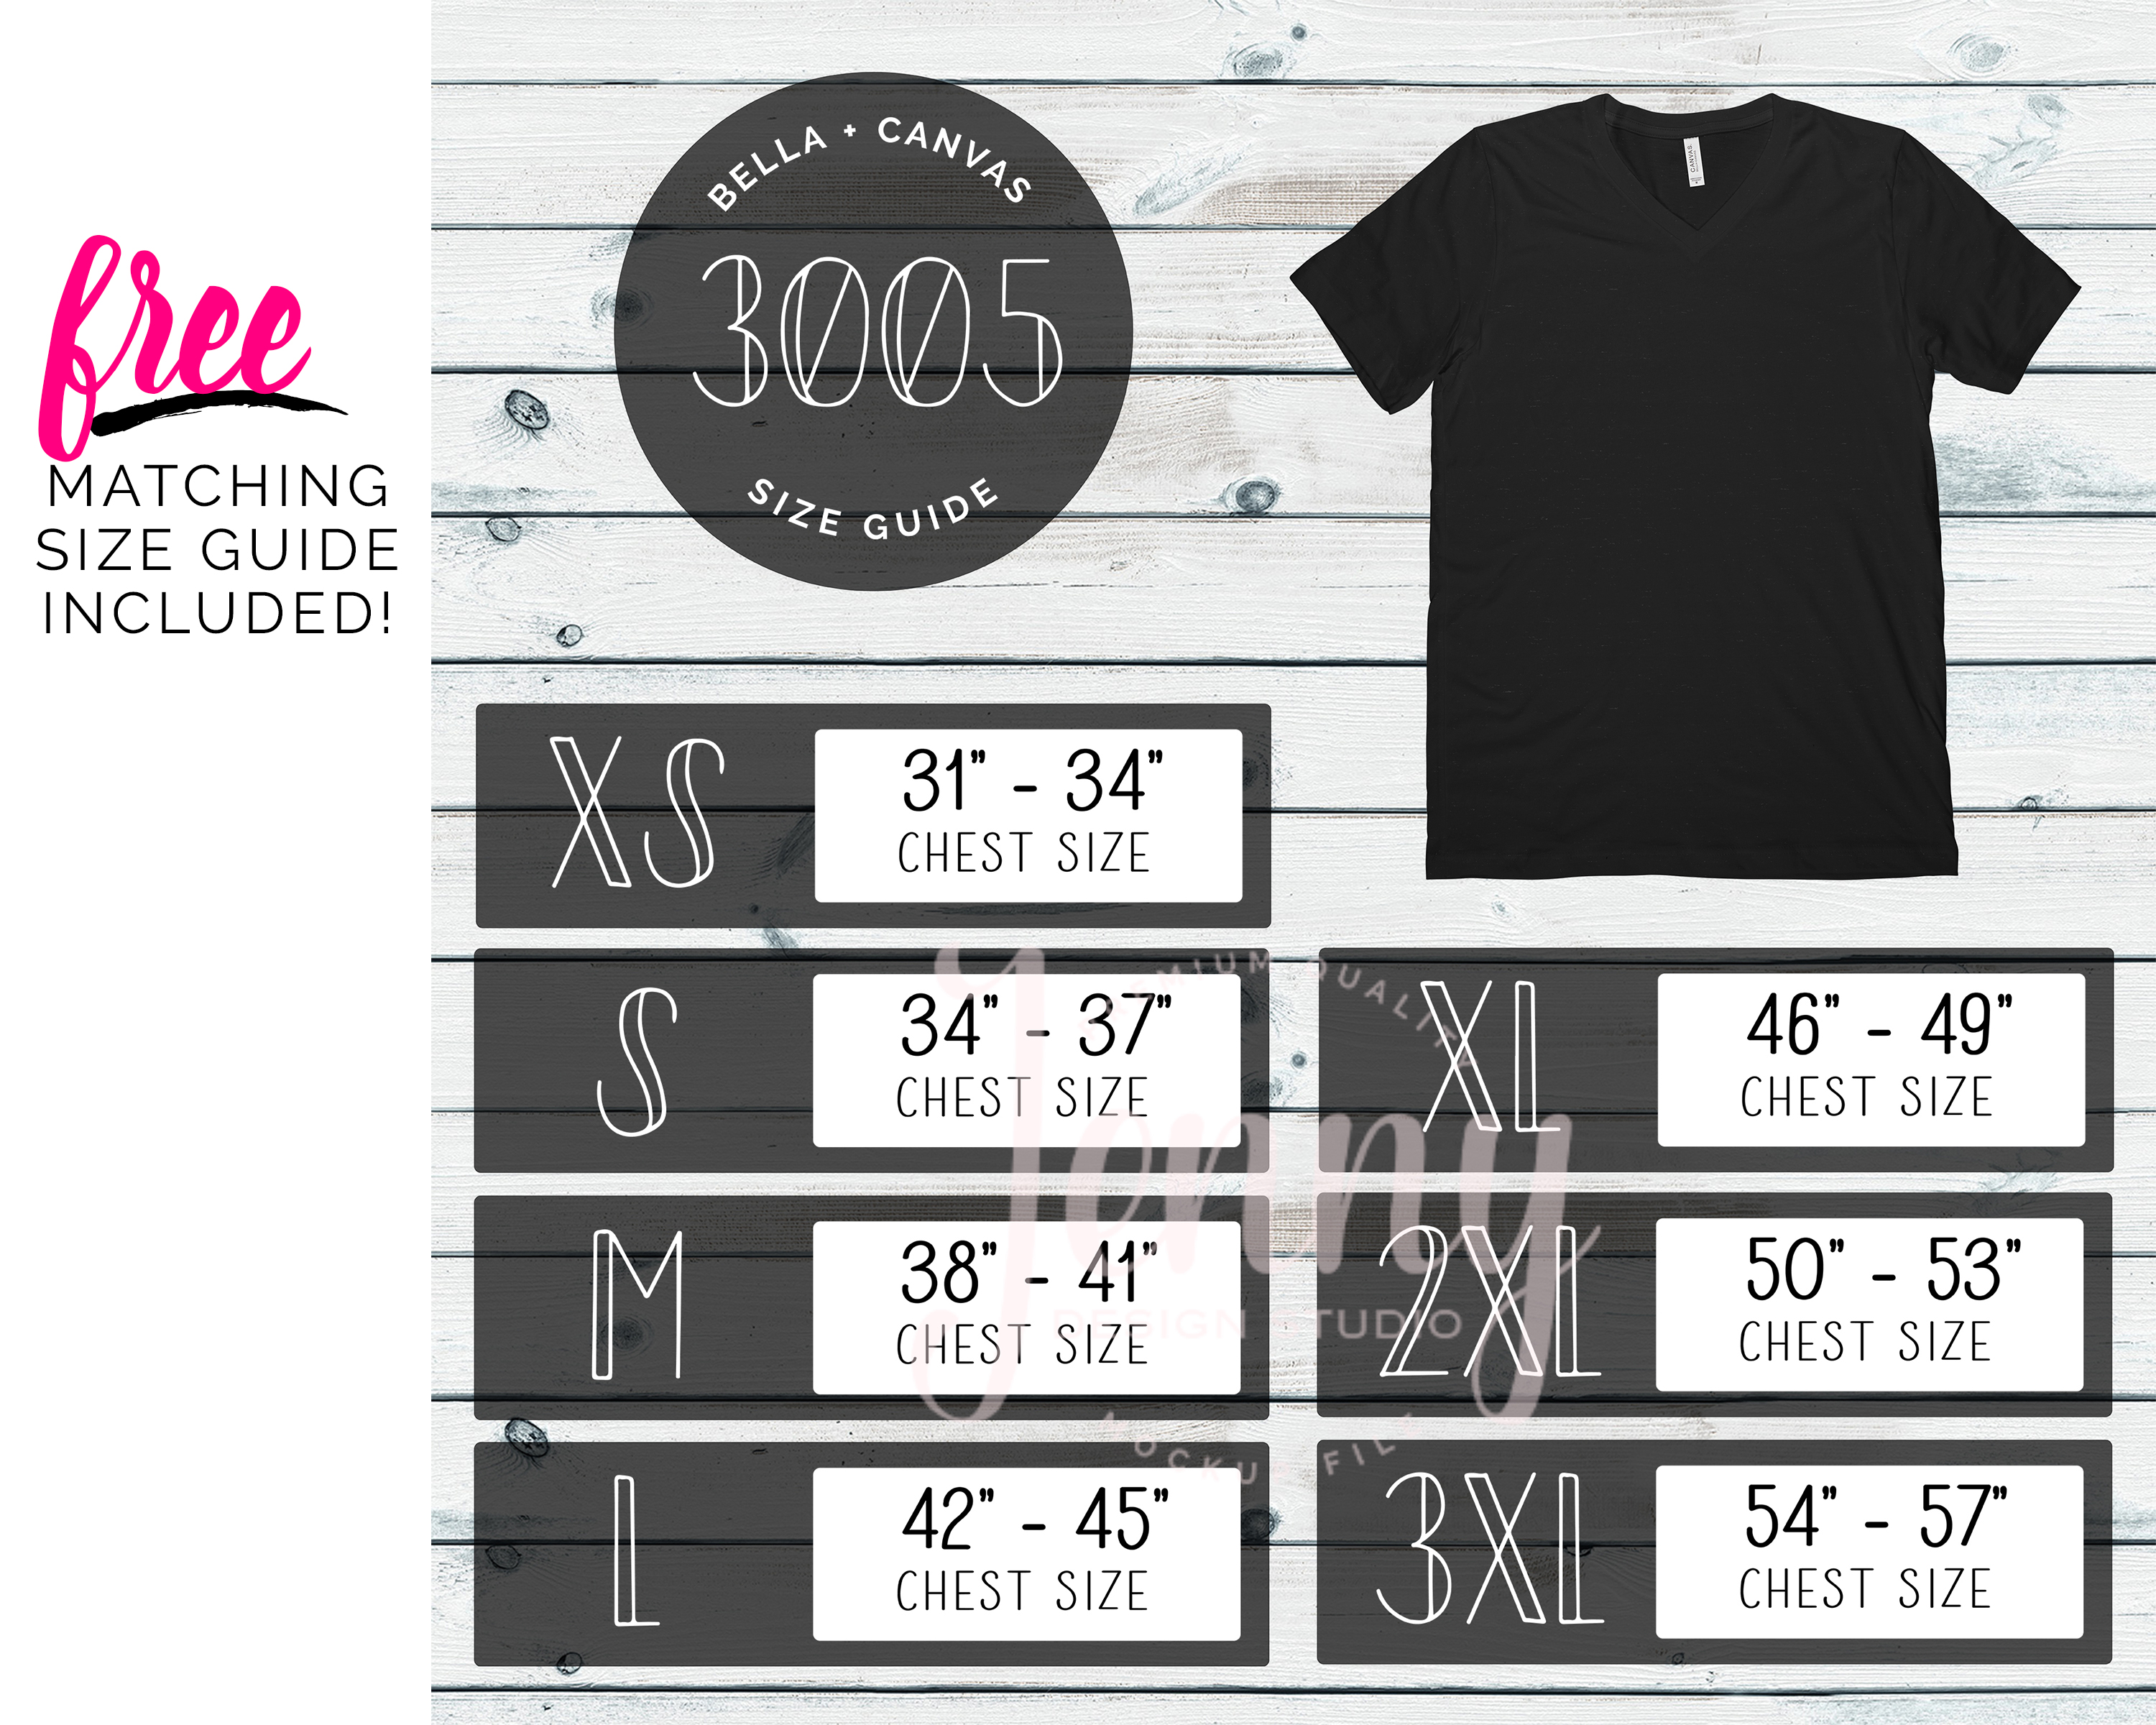 Bella Canvas 3005 Mockup Bundle, V-Neck Tshirt Bundle example image 2